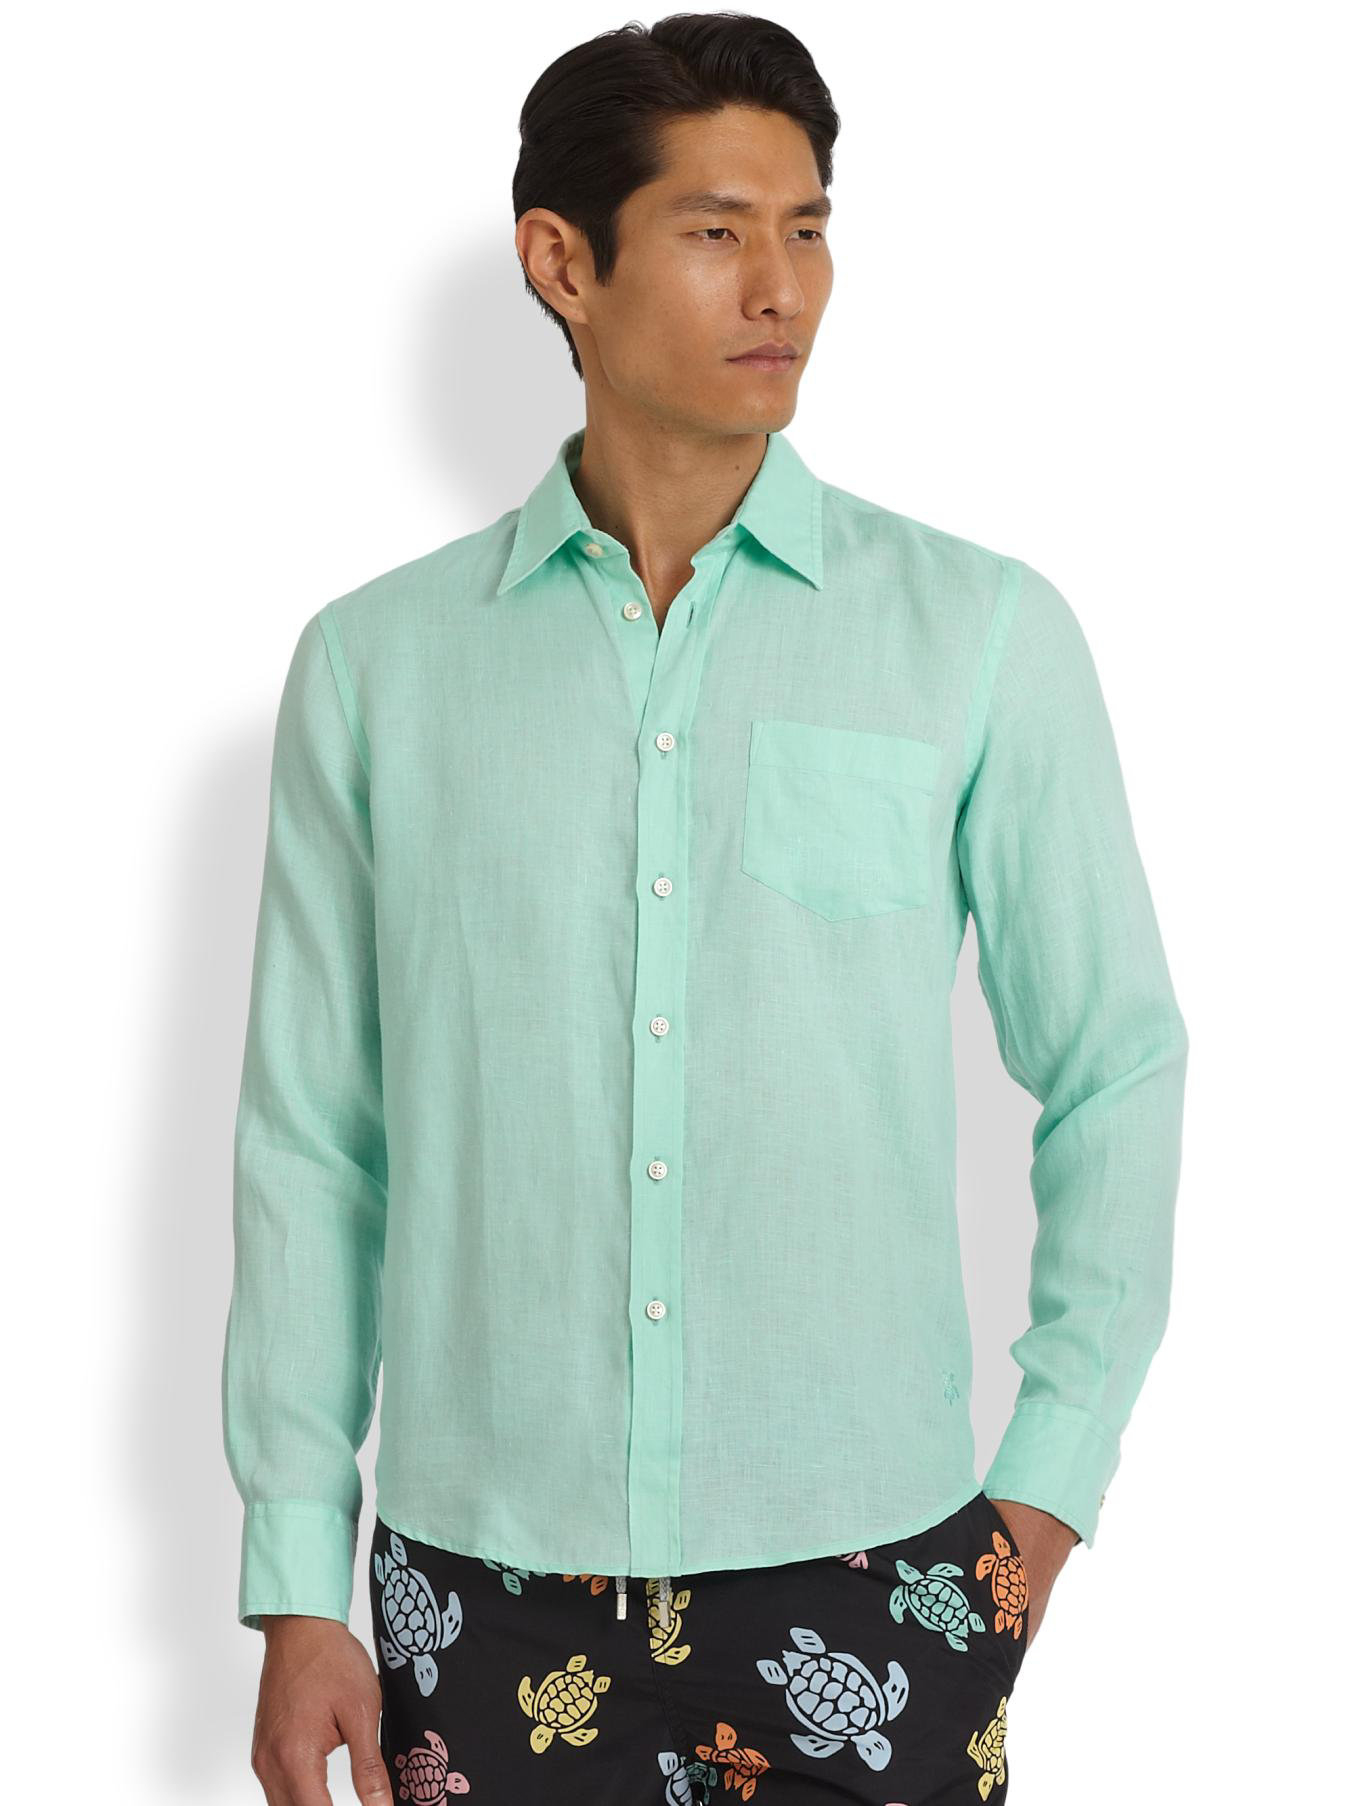 light green button down shirt is shirt